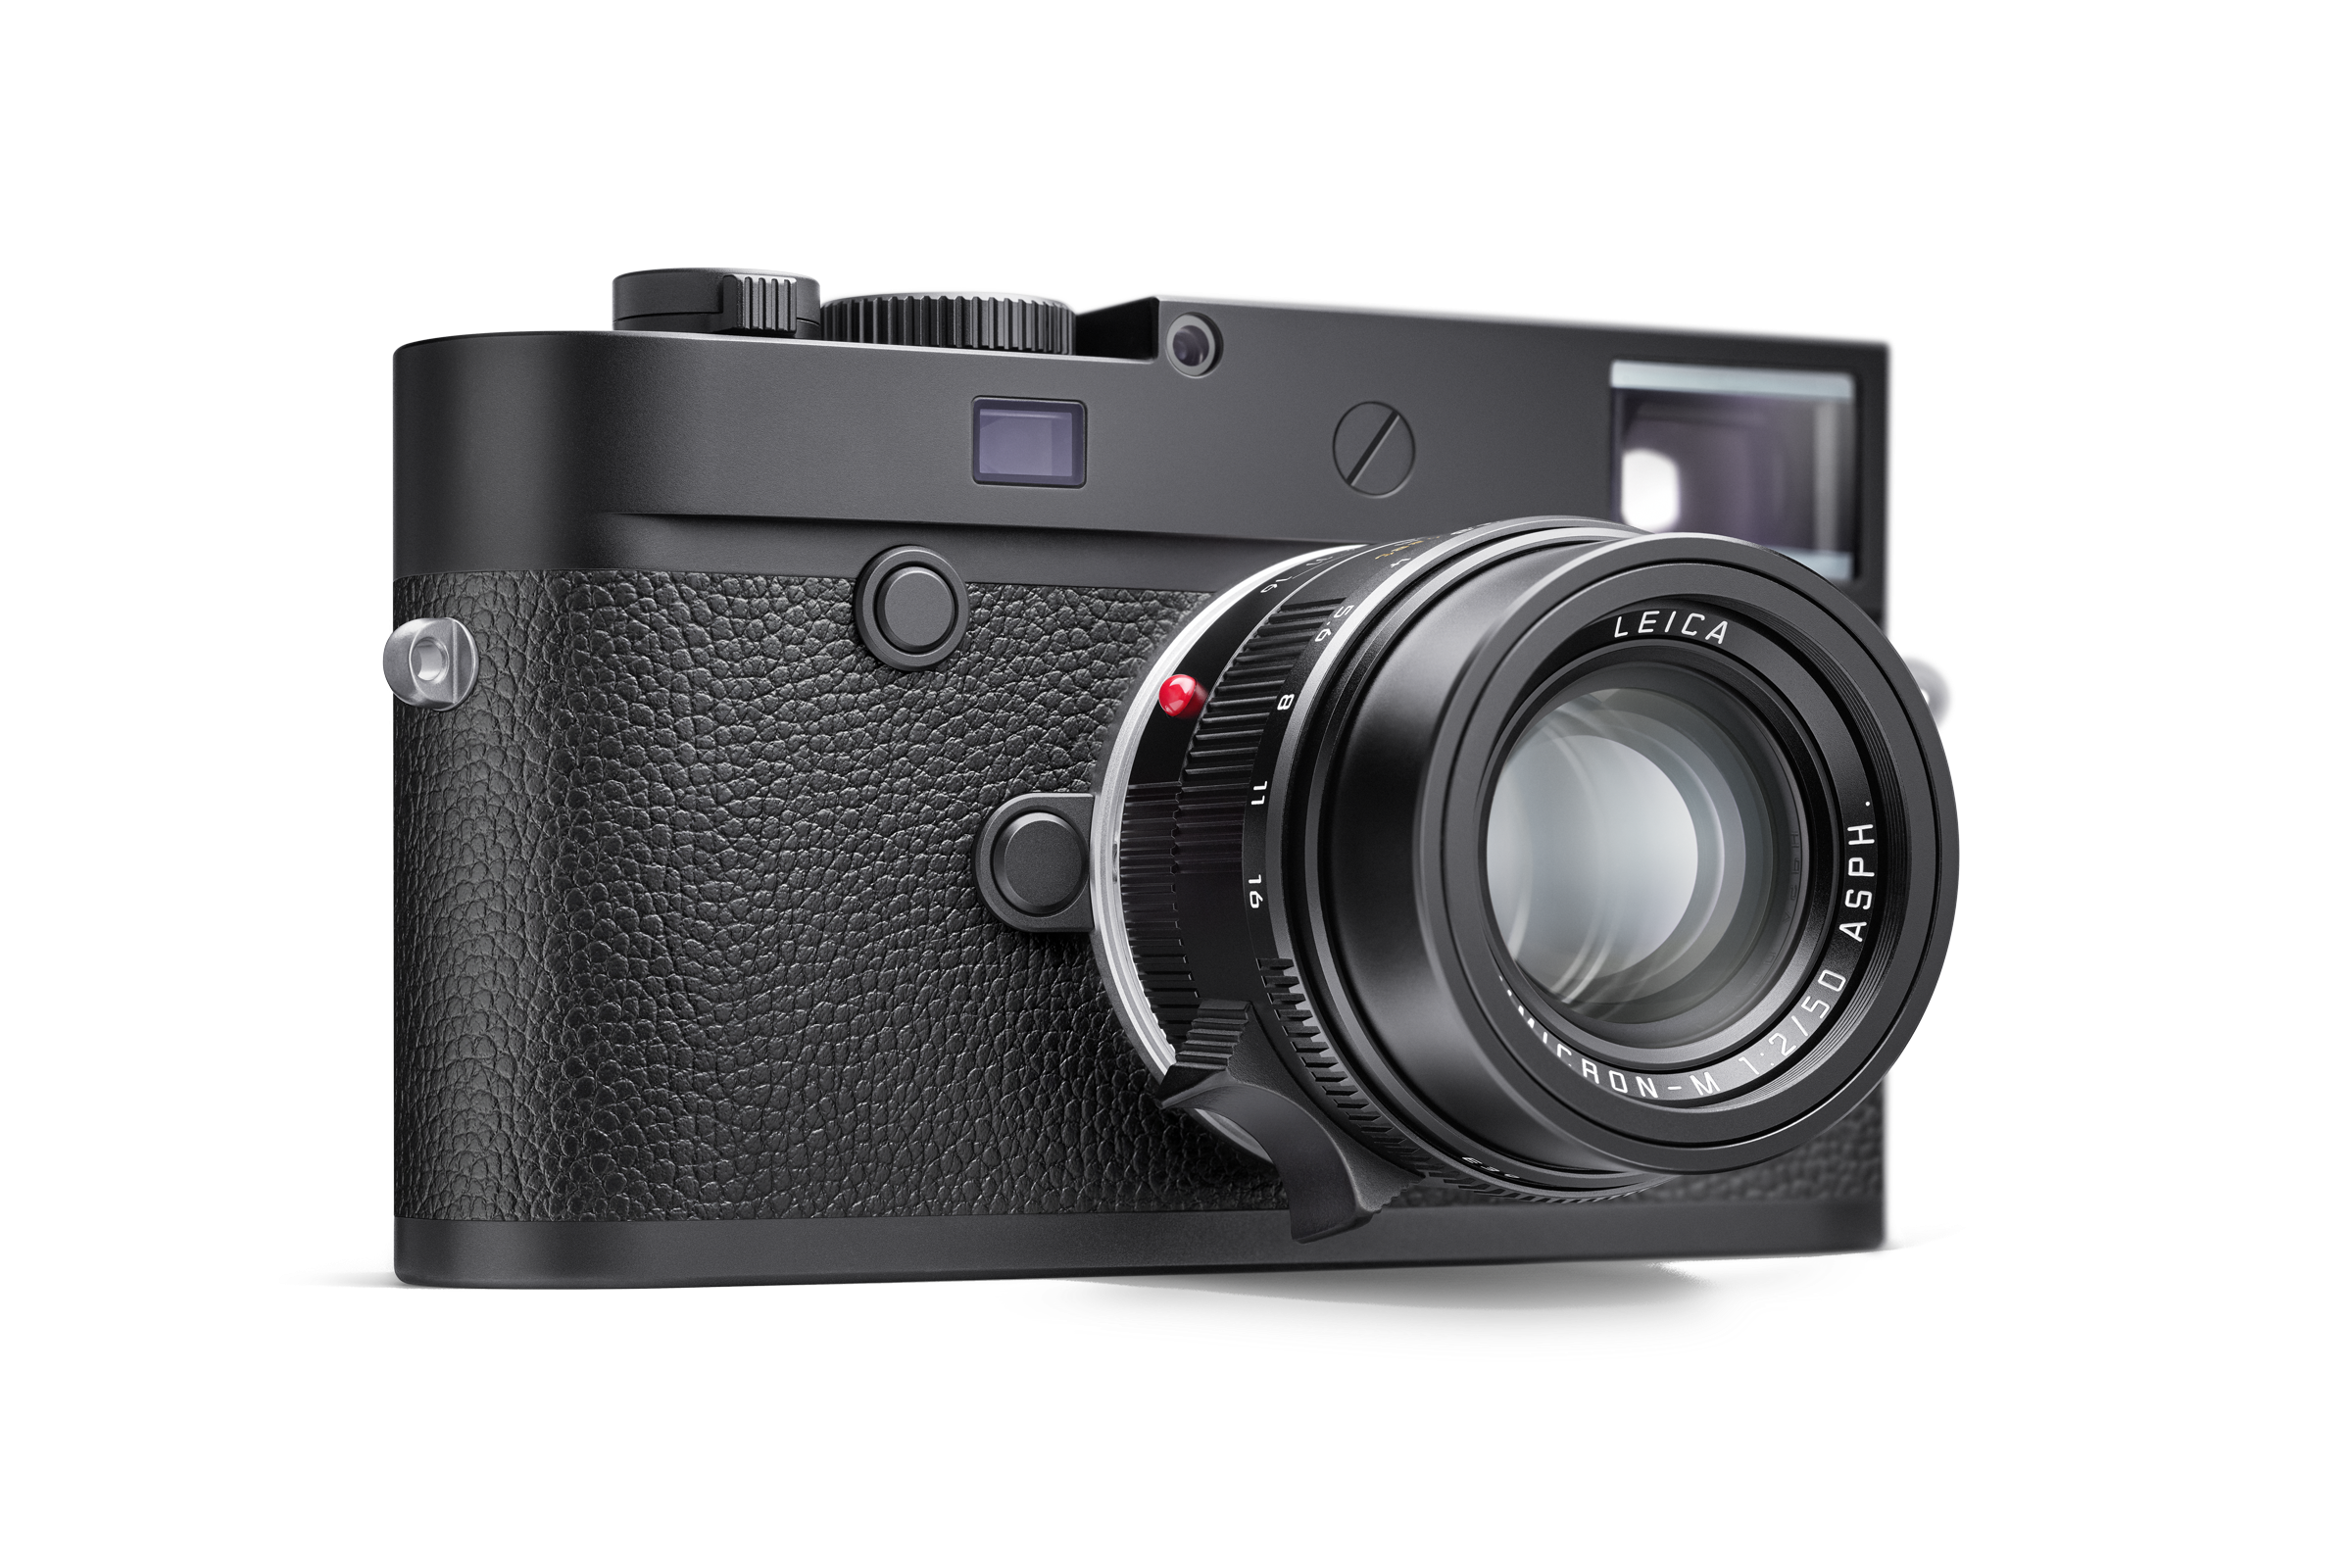 The new black-and-white Leica does things color cameras can't